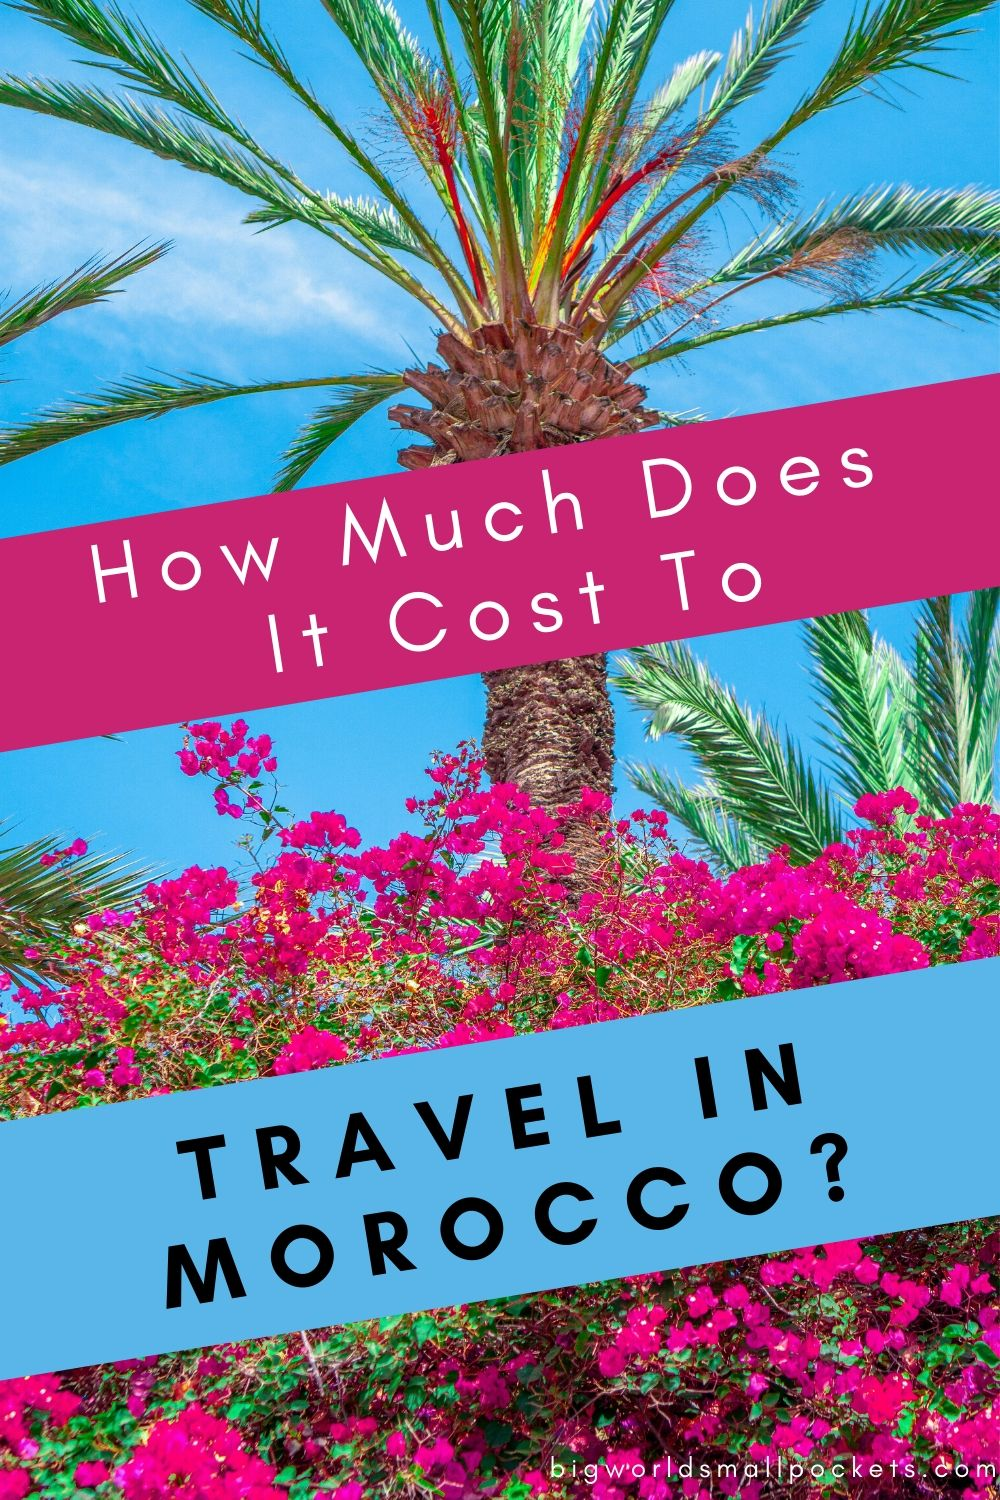 What Are the Costs of Travelling in Morocco?